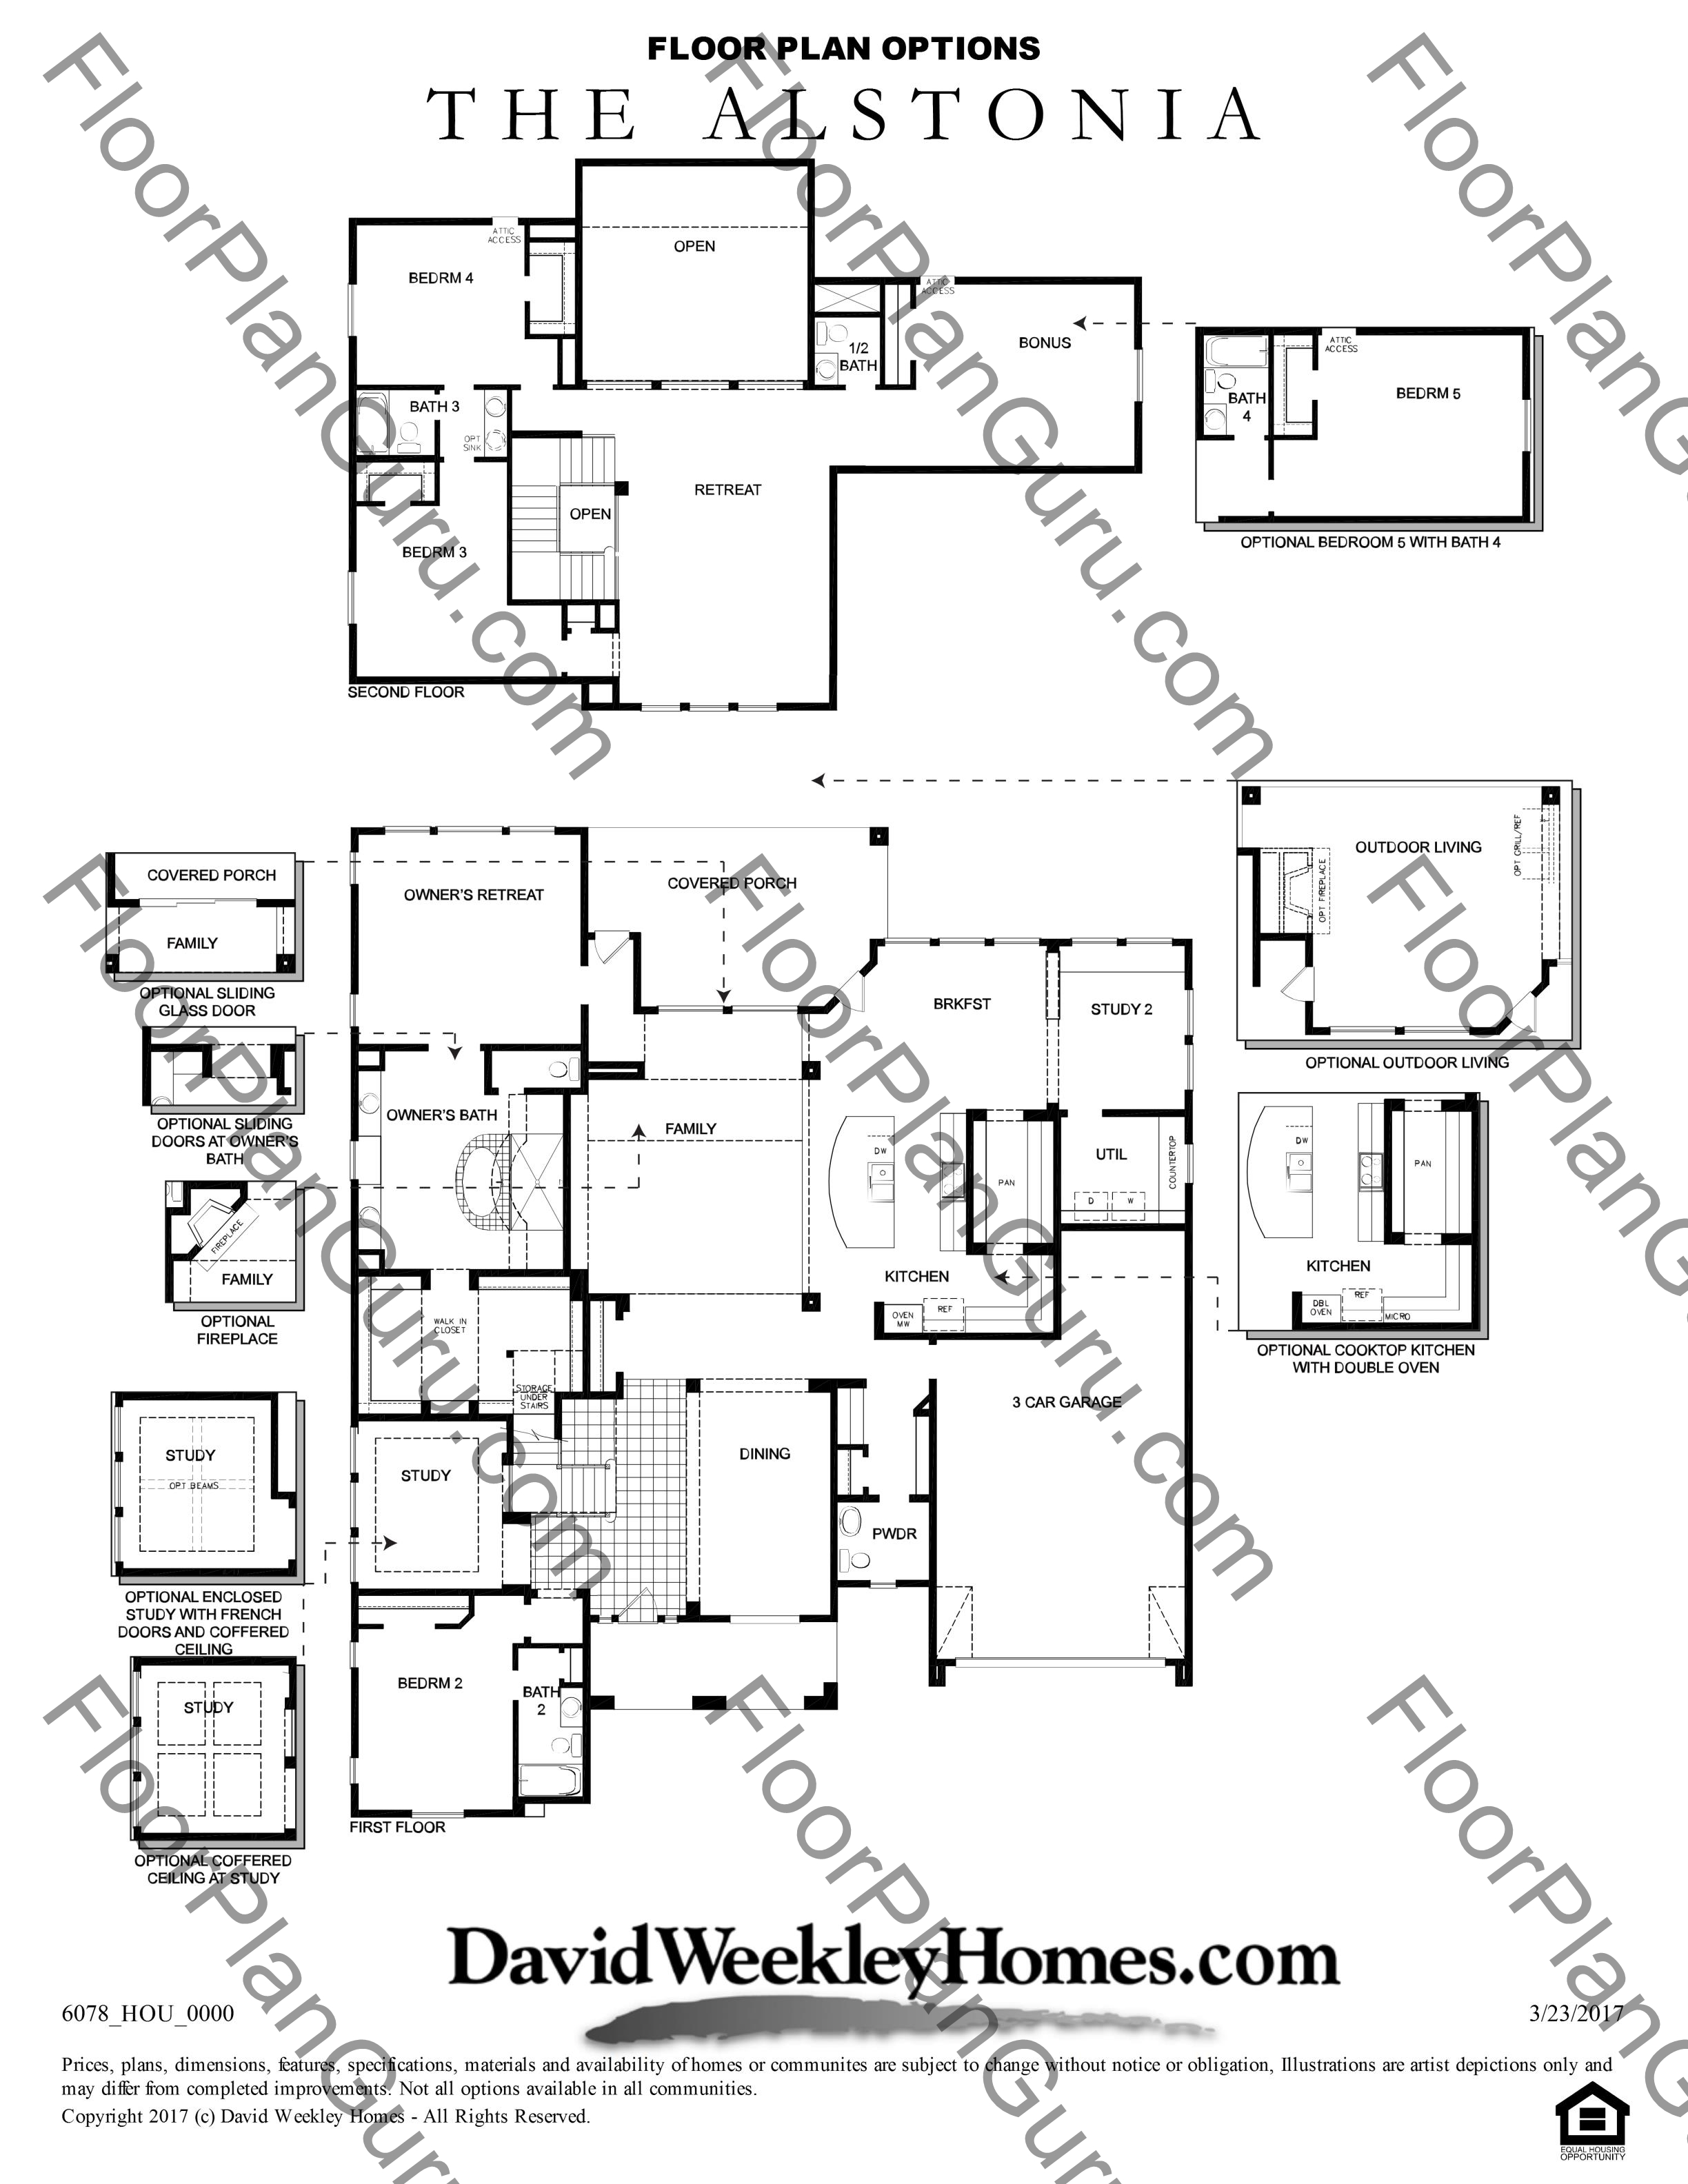 The Alstonia Floorplan By David Weekley Homes Build On Your Lot Central In Houston Texas Welcome To Floorplanguru Com